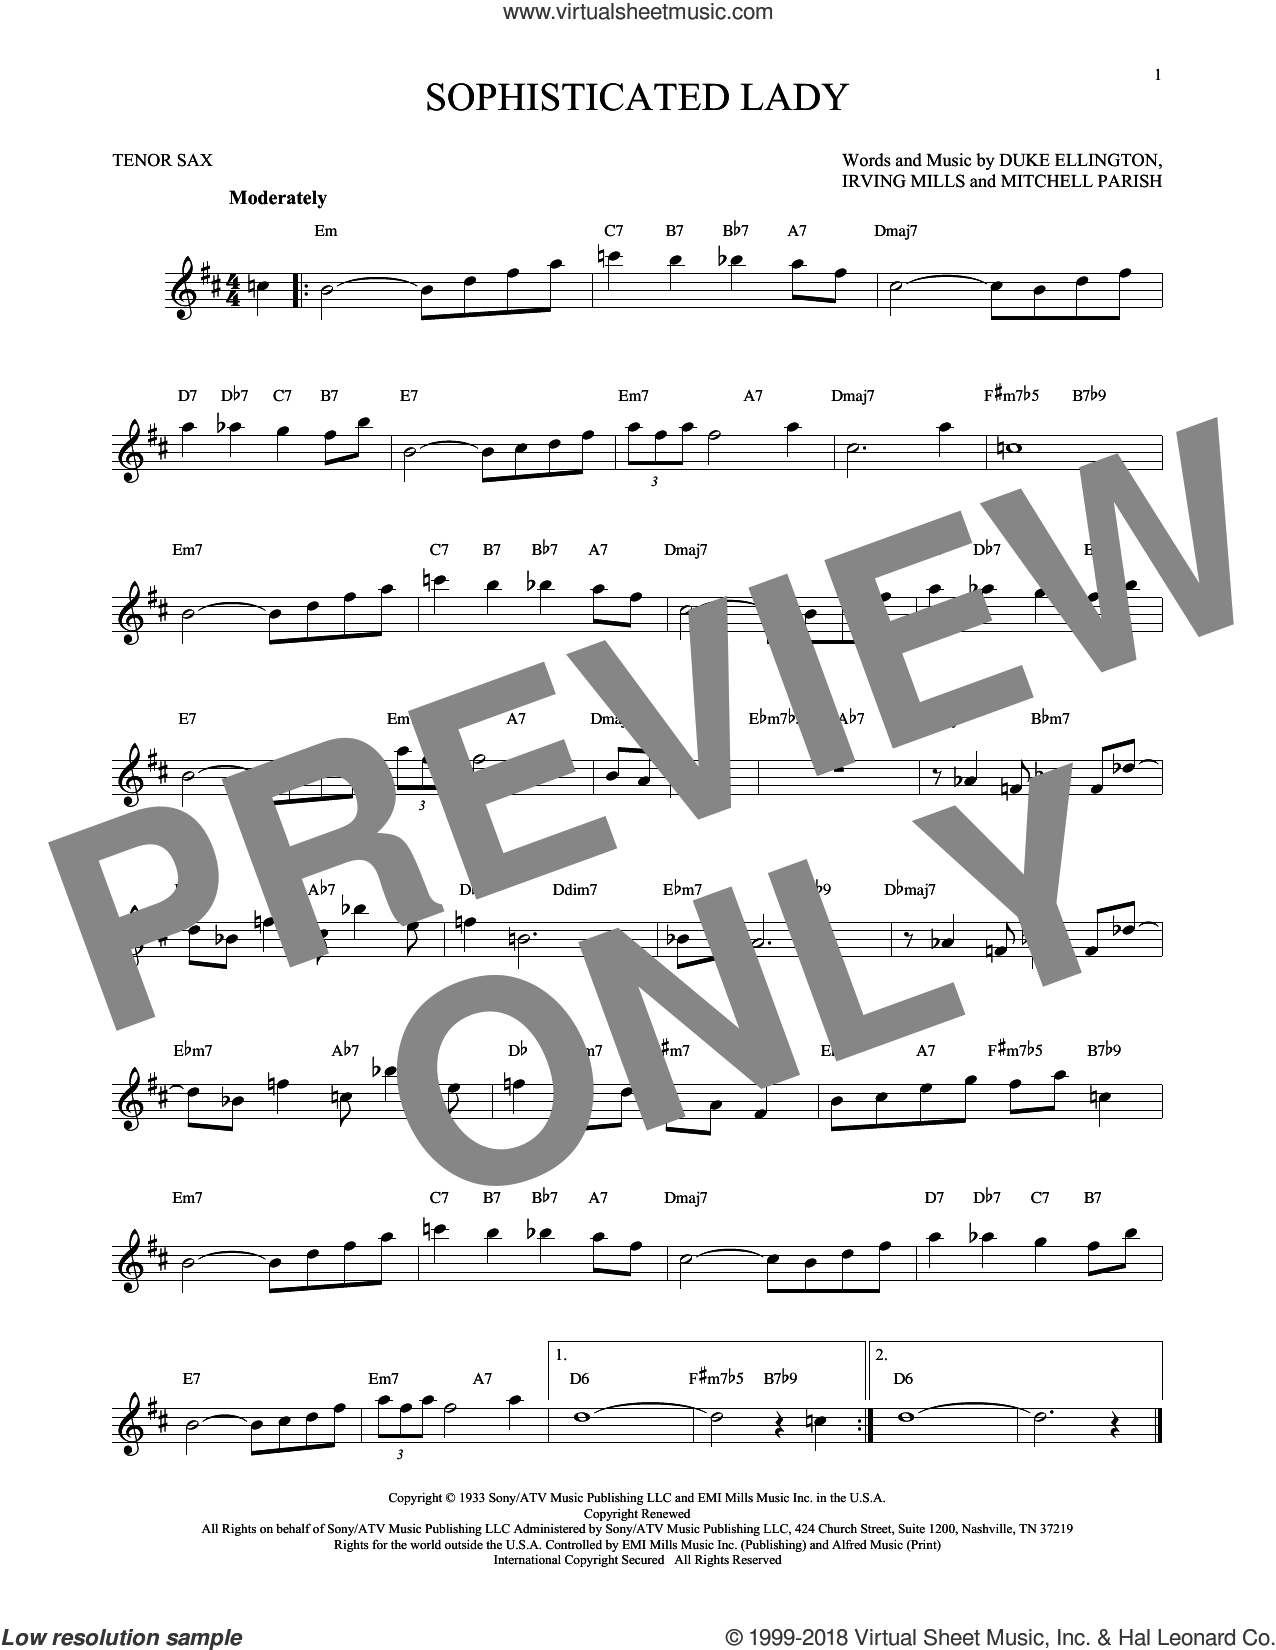 Sophisticated Lady sheet music for tenor saxophone solo by Duke Ellington, Irving Mills and Mitchell Parish, intermediate skill level